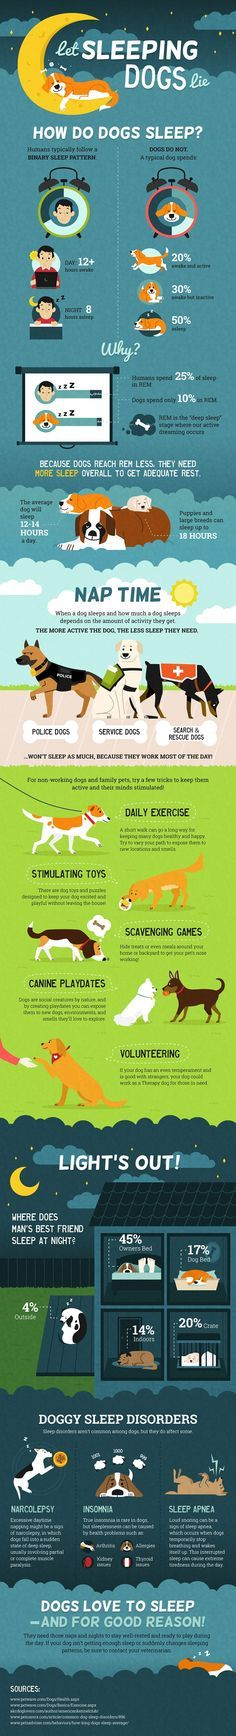 Dog Infographic:  how much sleep do dogs need, let sleeping dogs lie infographic http://www.dailydogtag.com/lifestyle/let-sleeping-dogs-lie-but-how-much-sleep-do-dogs-need/?utm_content=bufferc213e&utm_medium=social&utm_source=pinterest.com&utm_campaign=buffer#_a5y_p=4157036